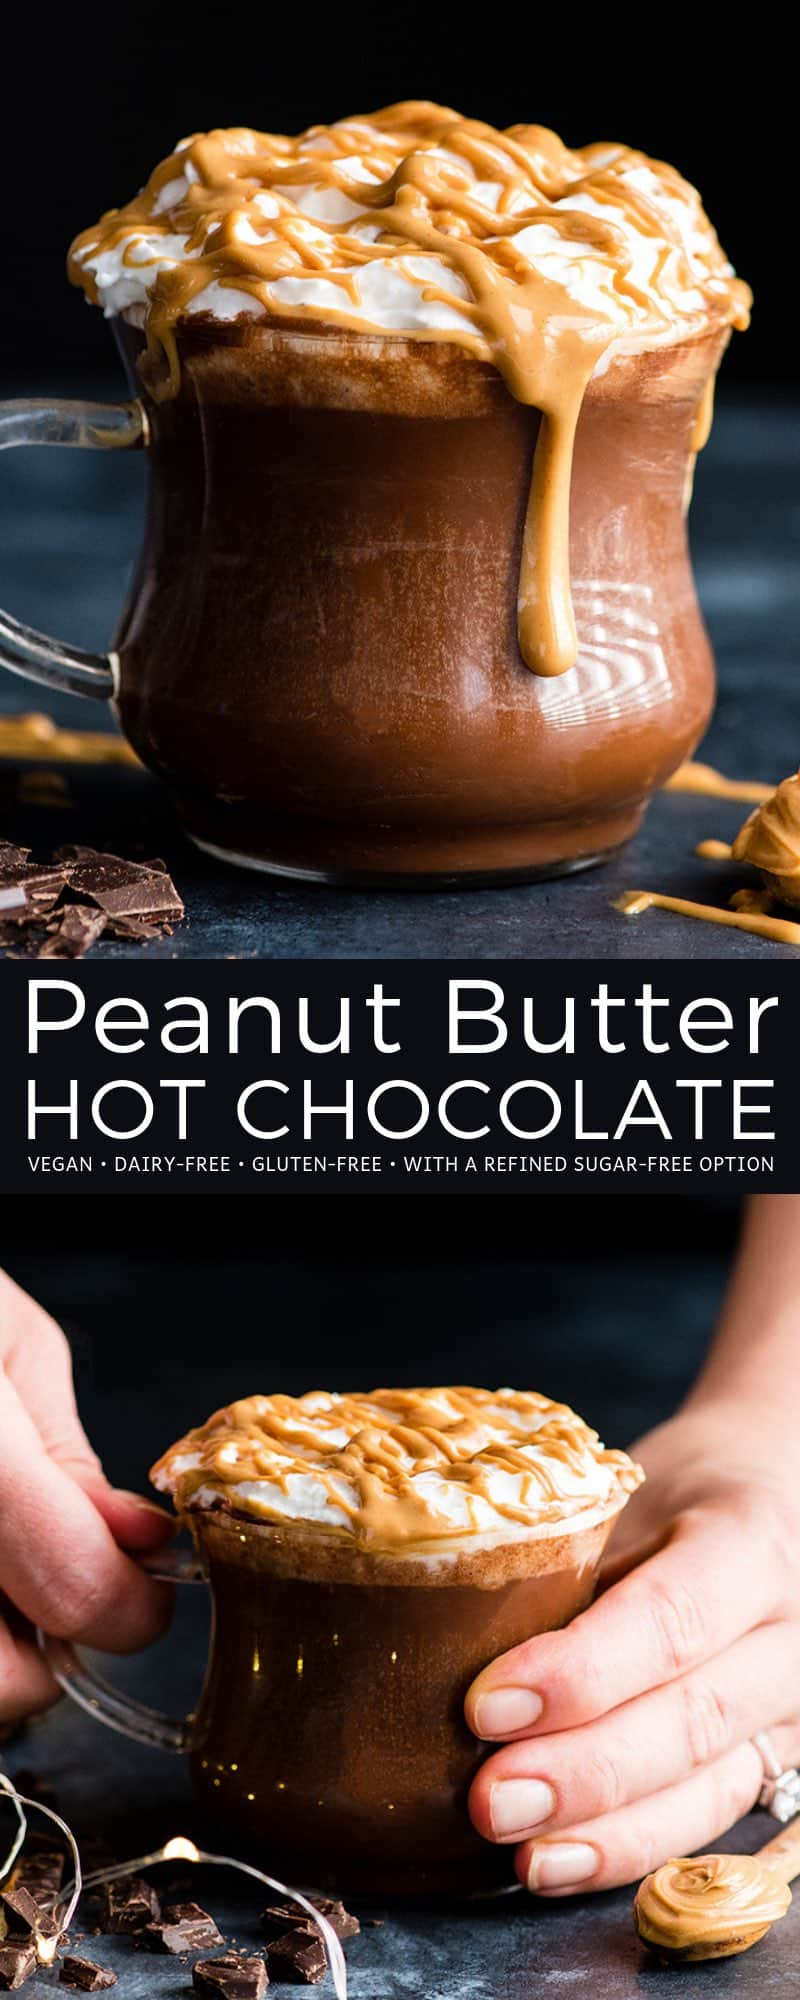 This healthy Homemade Peanut Butter Hot Chocolate Recipe is creamy, chocolatey and bursting with peanut butter flavor! It's vegan, dairy-free, and gluten-free with a refined sugar-free option (but can also be made with regular milk or cream)! This easy homemade hot chocolate is ready in 10 minutes and a perfect warm treat to enjoy after playing in the snow! #peanutbutter #hotchocolate #hotcocoa #healthyrecipe #vegan #dairyfree #glutenfree